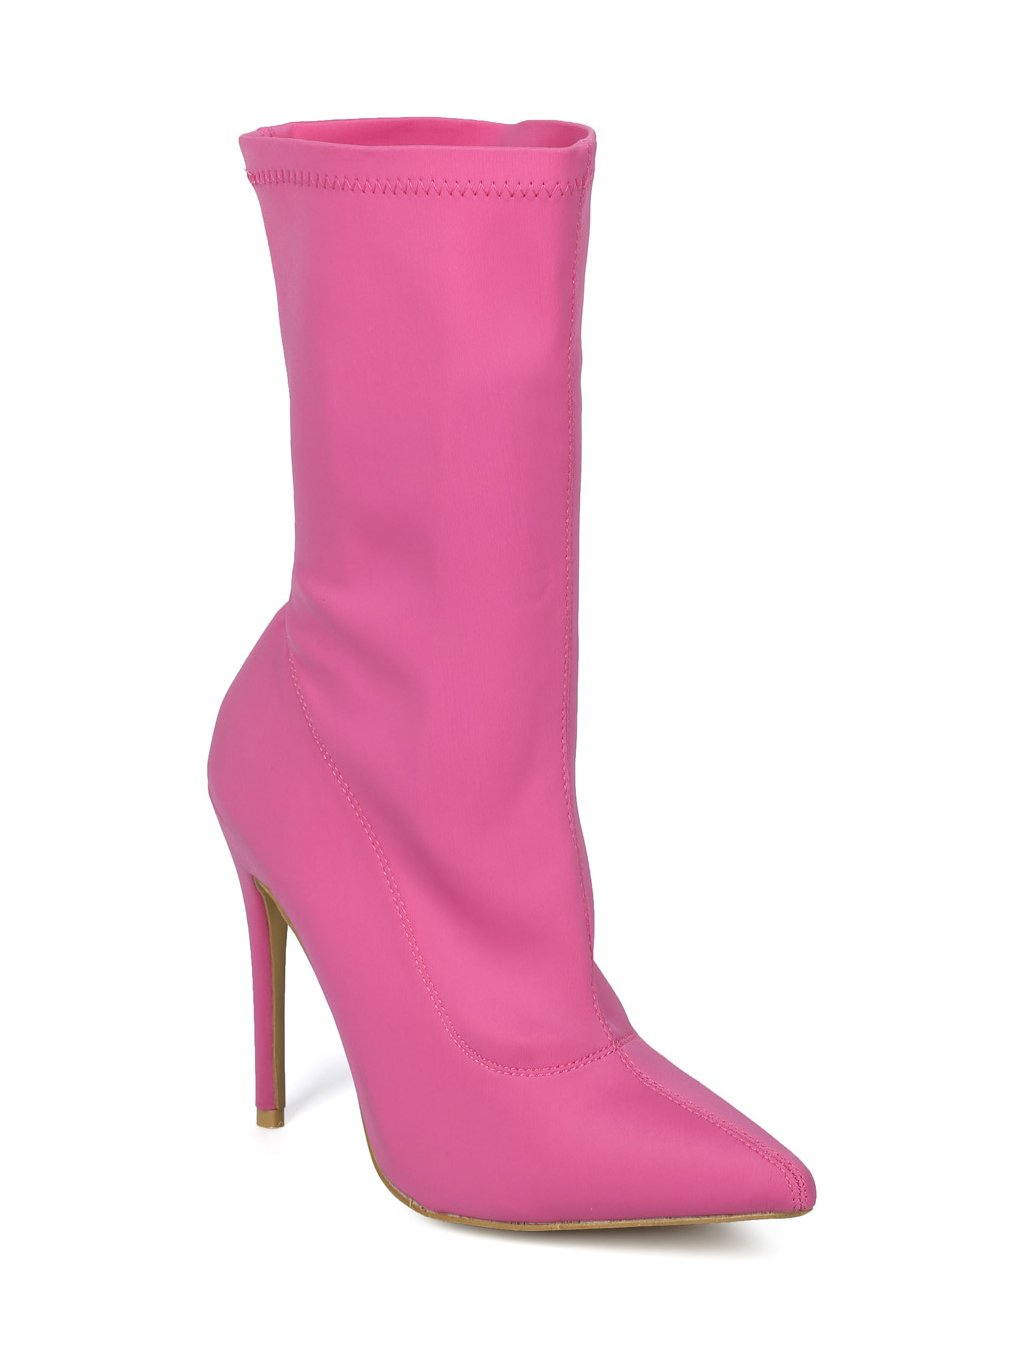 Alrisco Women Stretch Fabric Mid-Calf Pointy Toe Stiletto Sock Boot HF44 - Hot Pink Lycra (Size: 7.5)